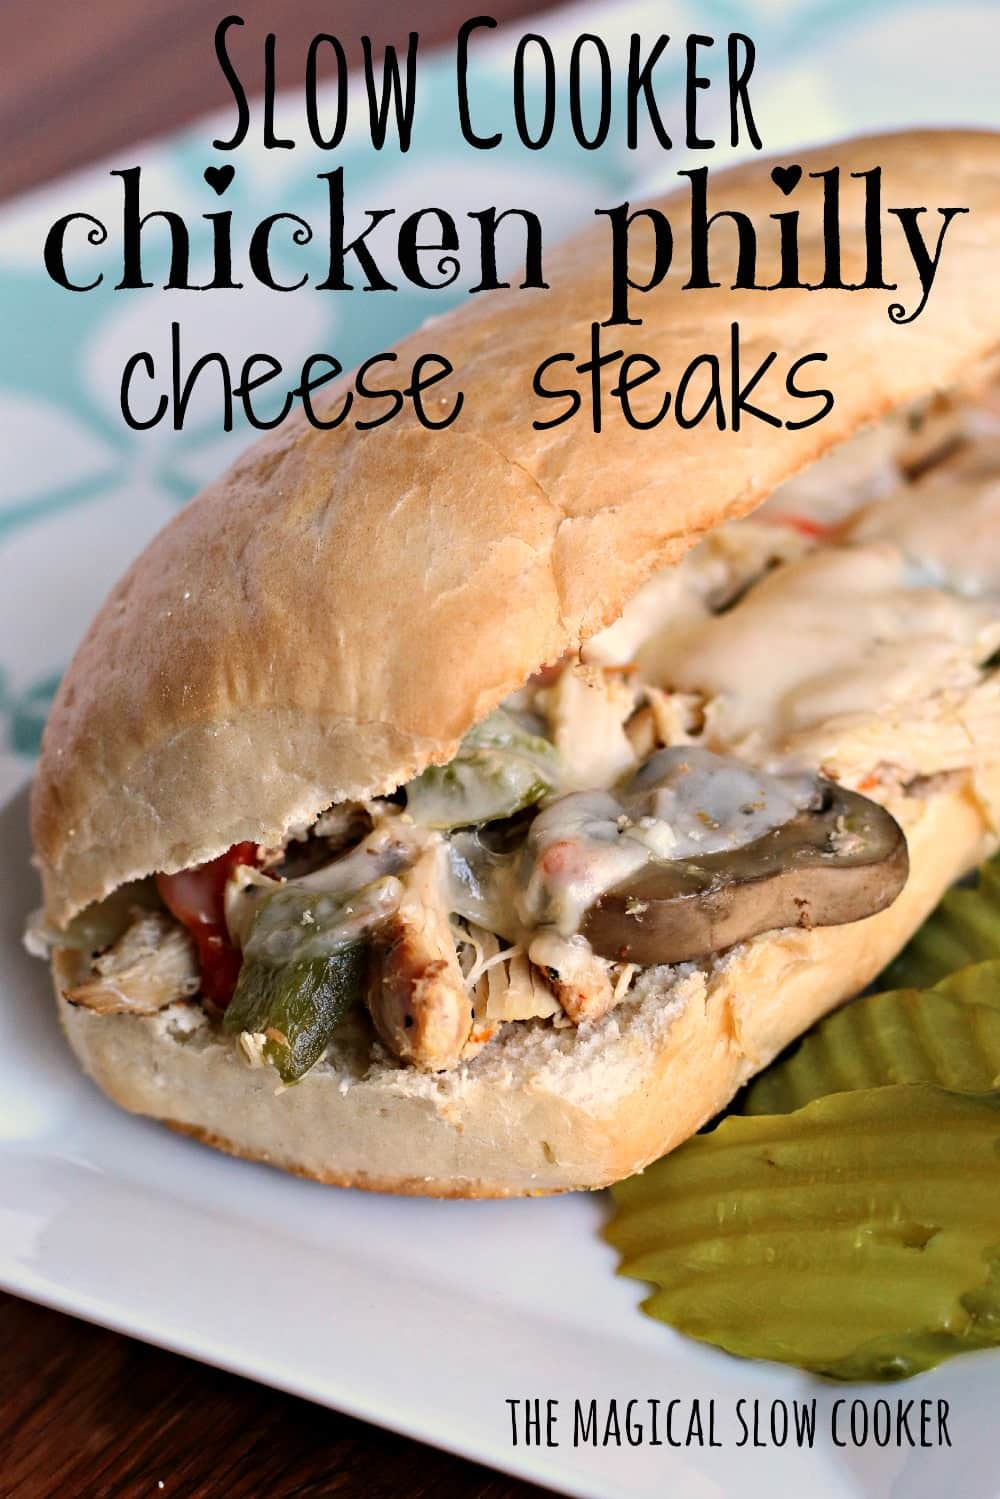 ... Philly Cheese Steaks - The Magical Slow CookerThe Magical Slow Cooker